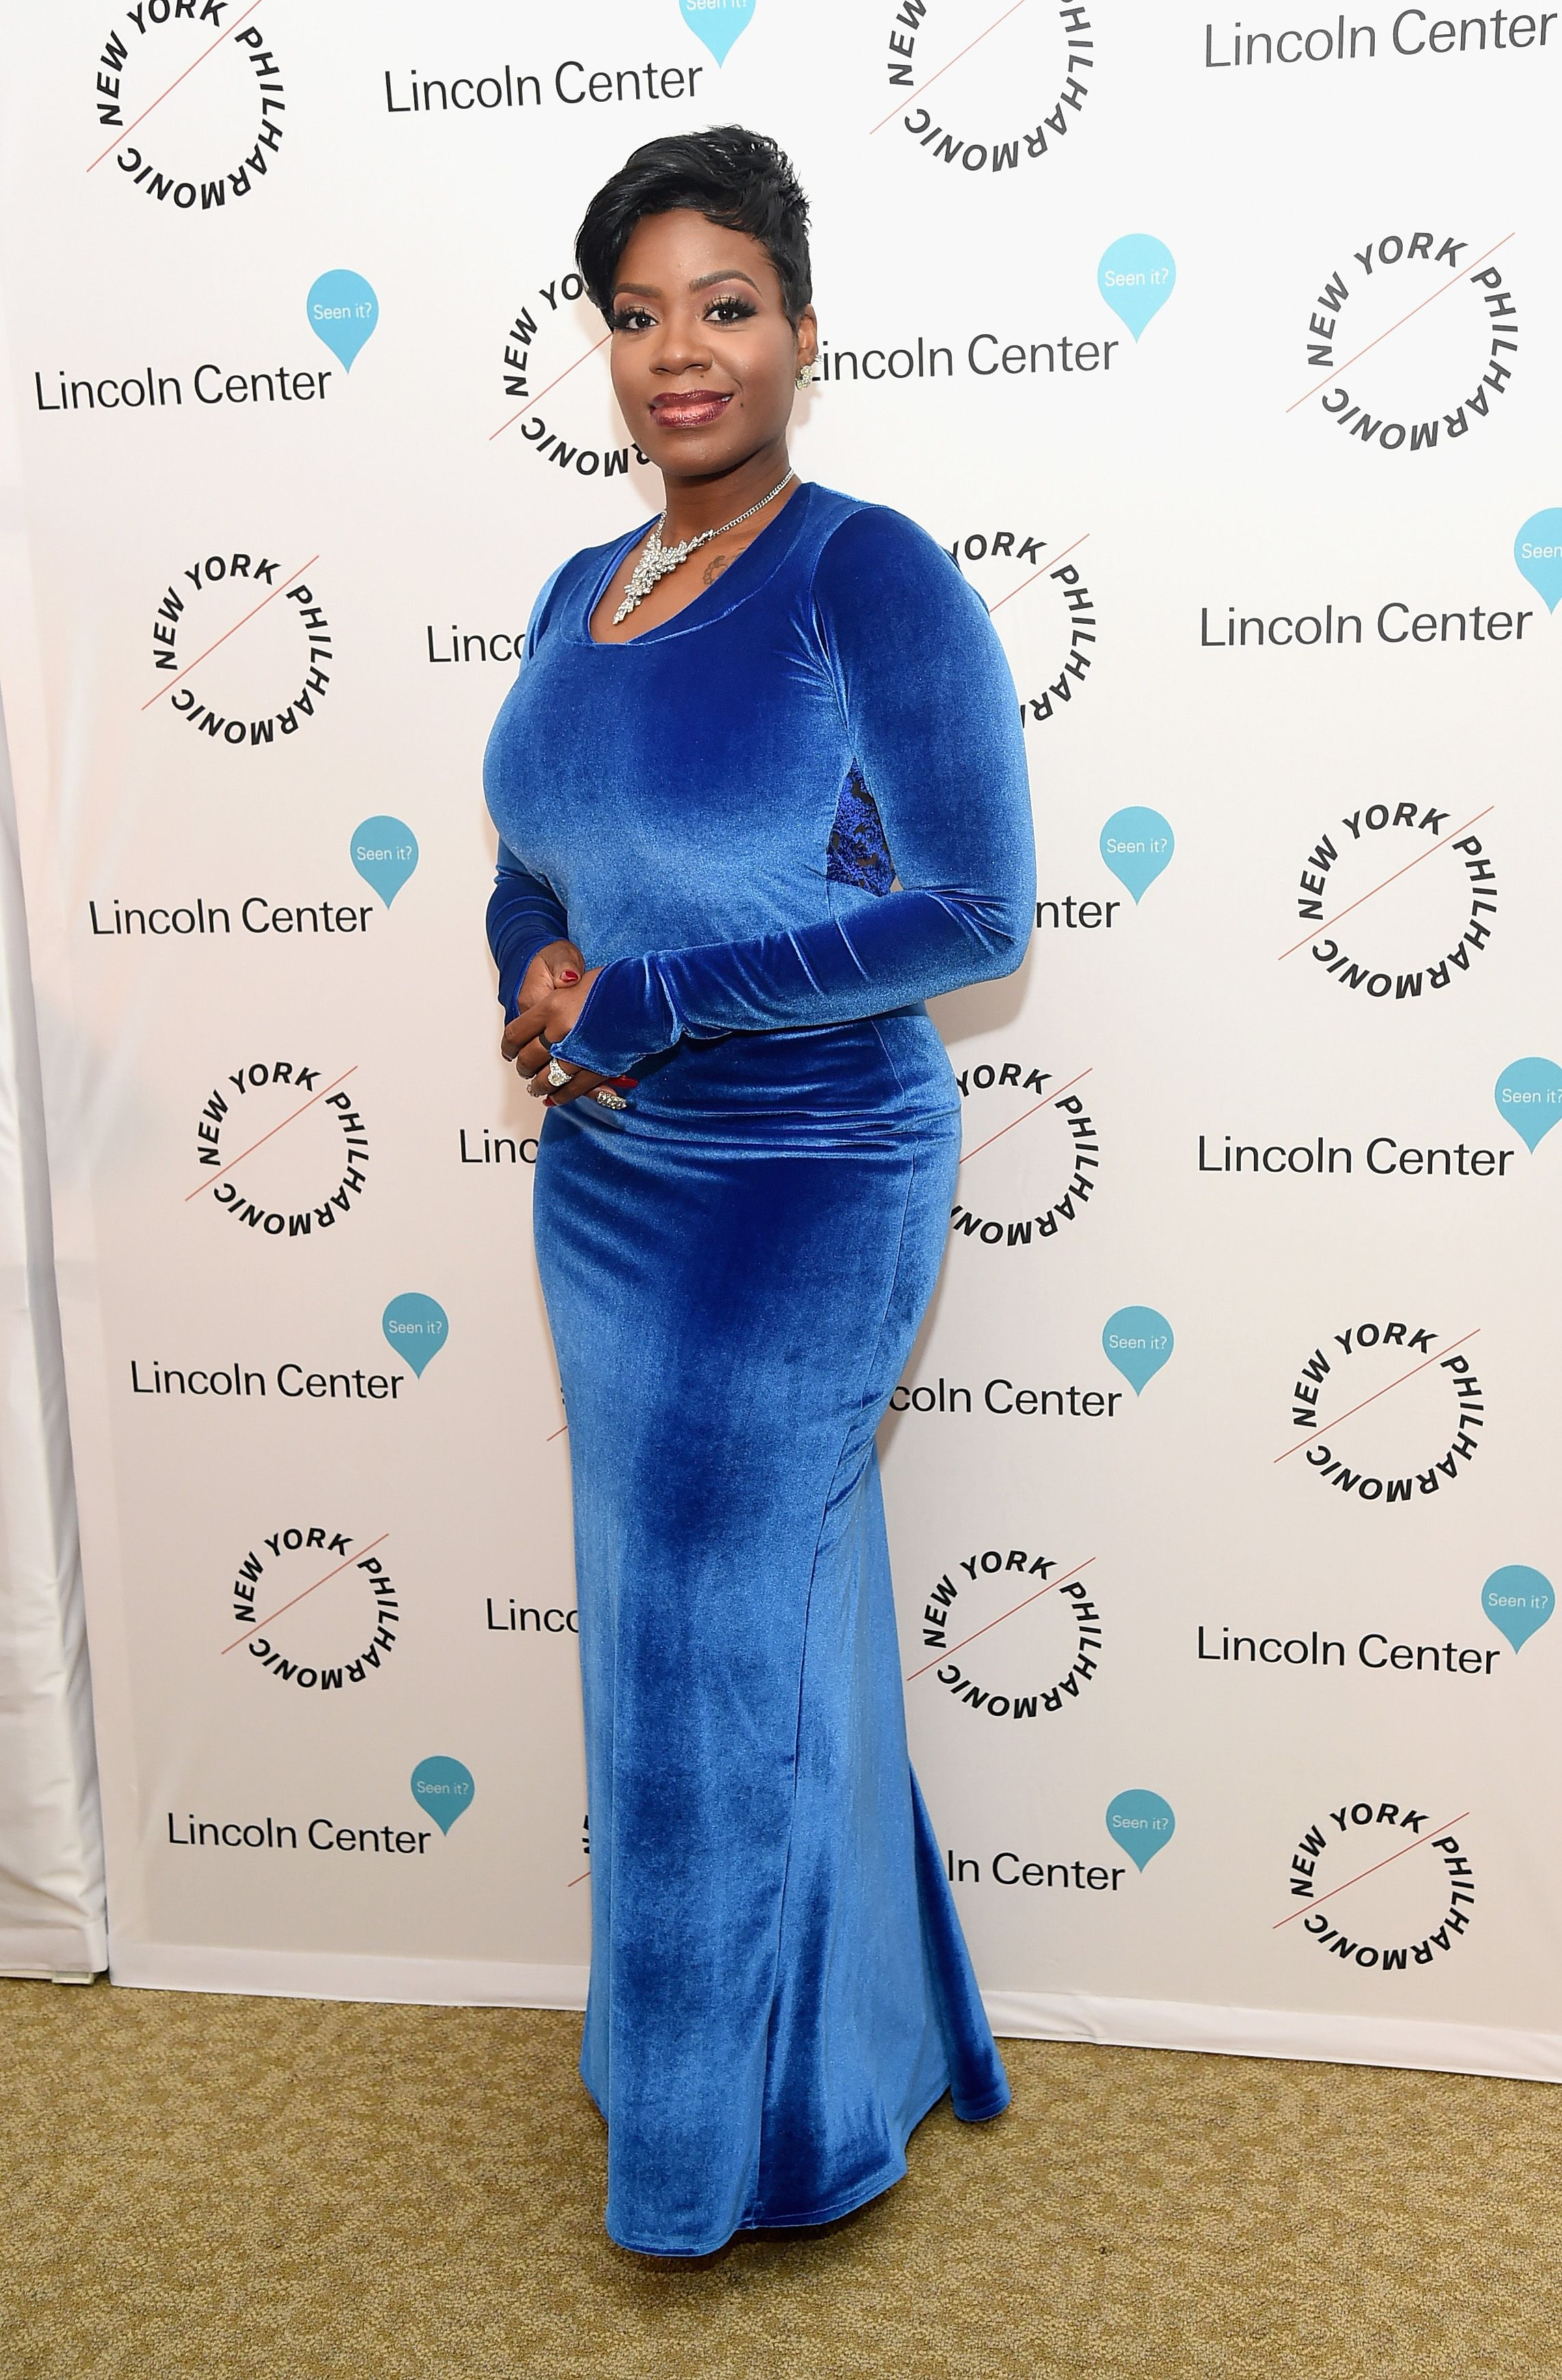 """Fantasia Barrino during the """"Sinatra Voice for a Century"""" event at David Geffen Hall on December 3, 2015 in New York City. 